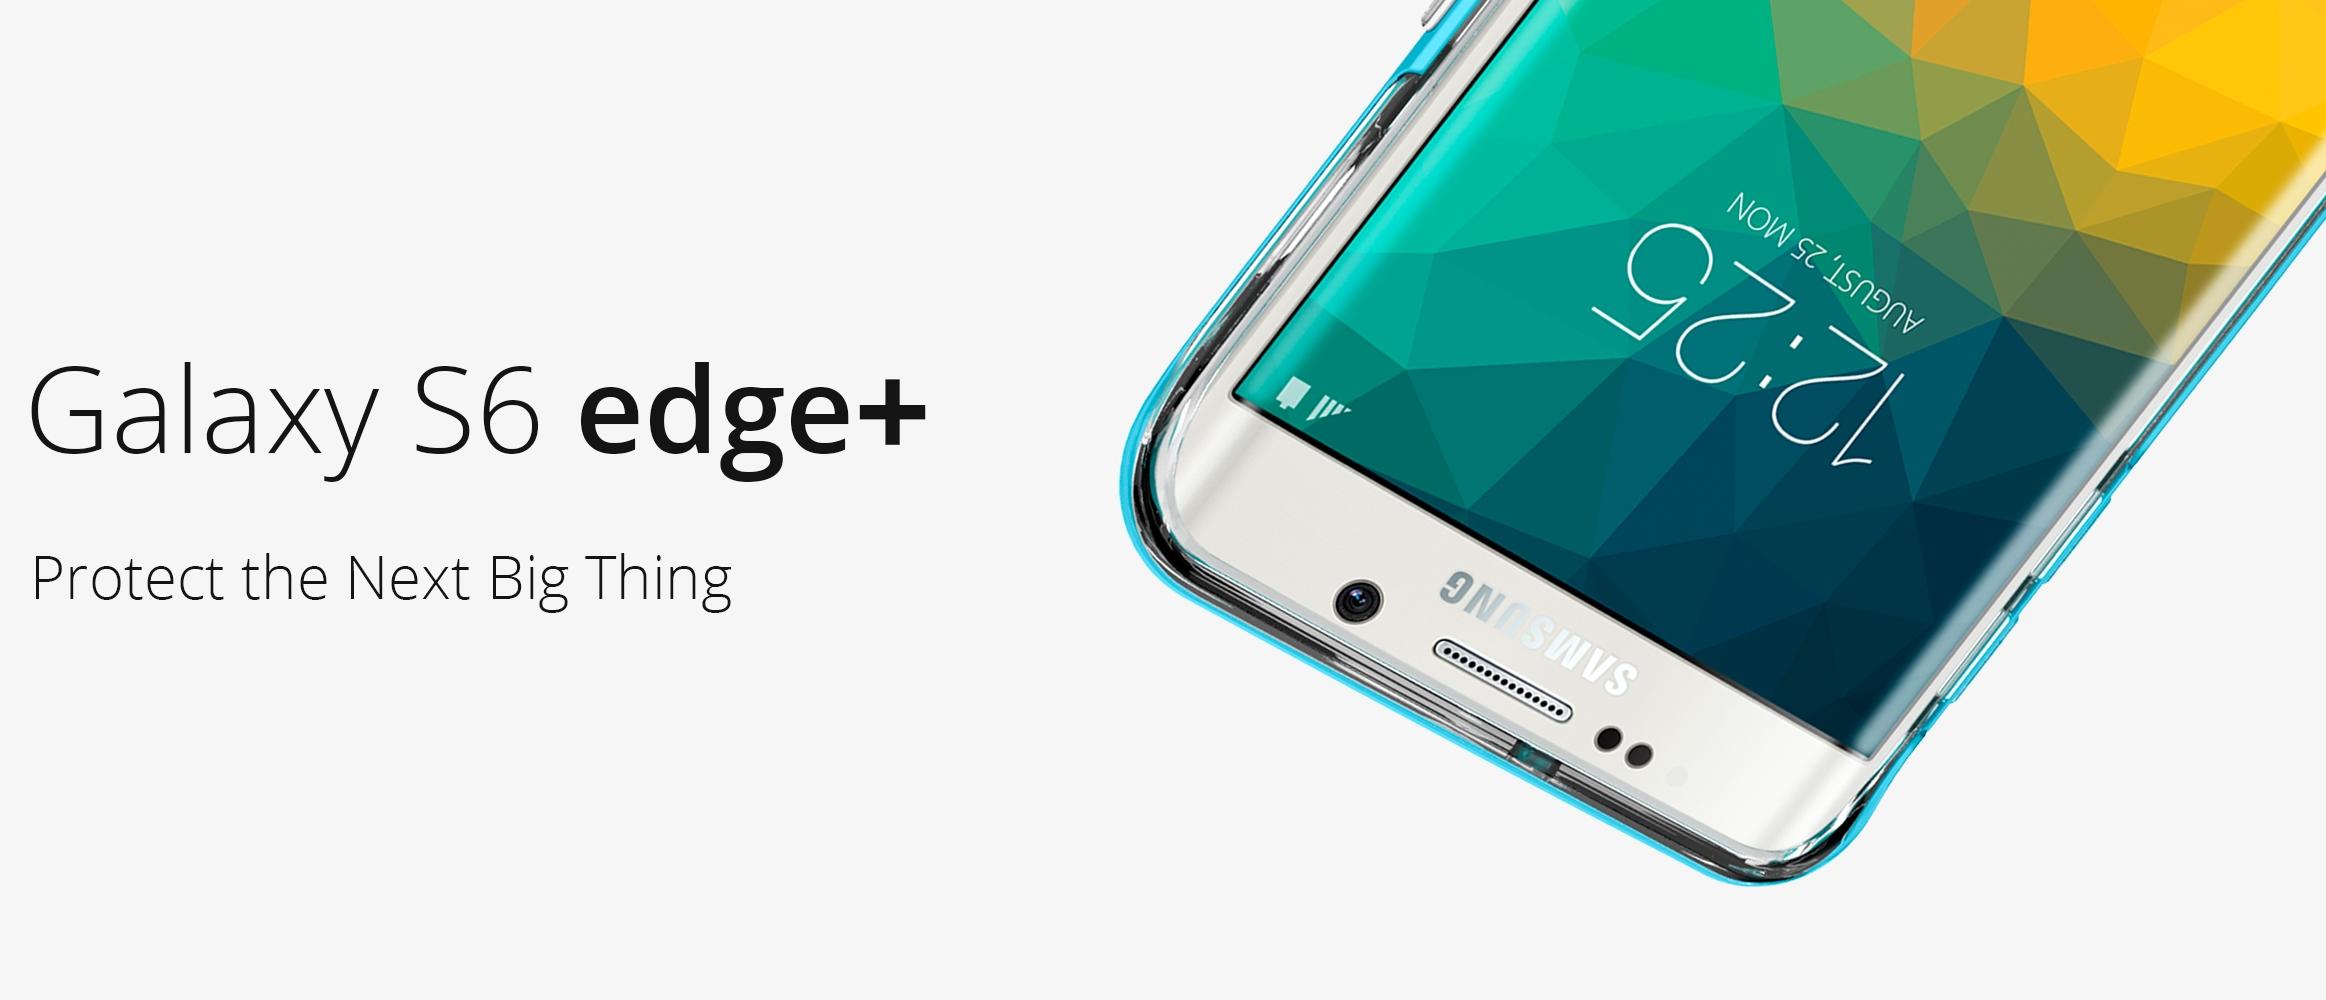 Spigen-cases-for-the-Samsung-Galaxy-S6-Edge-Plus